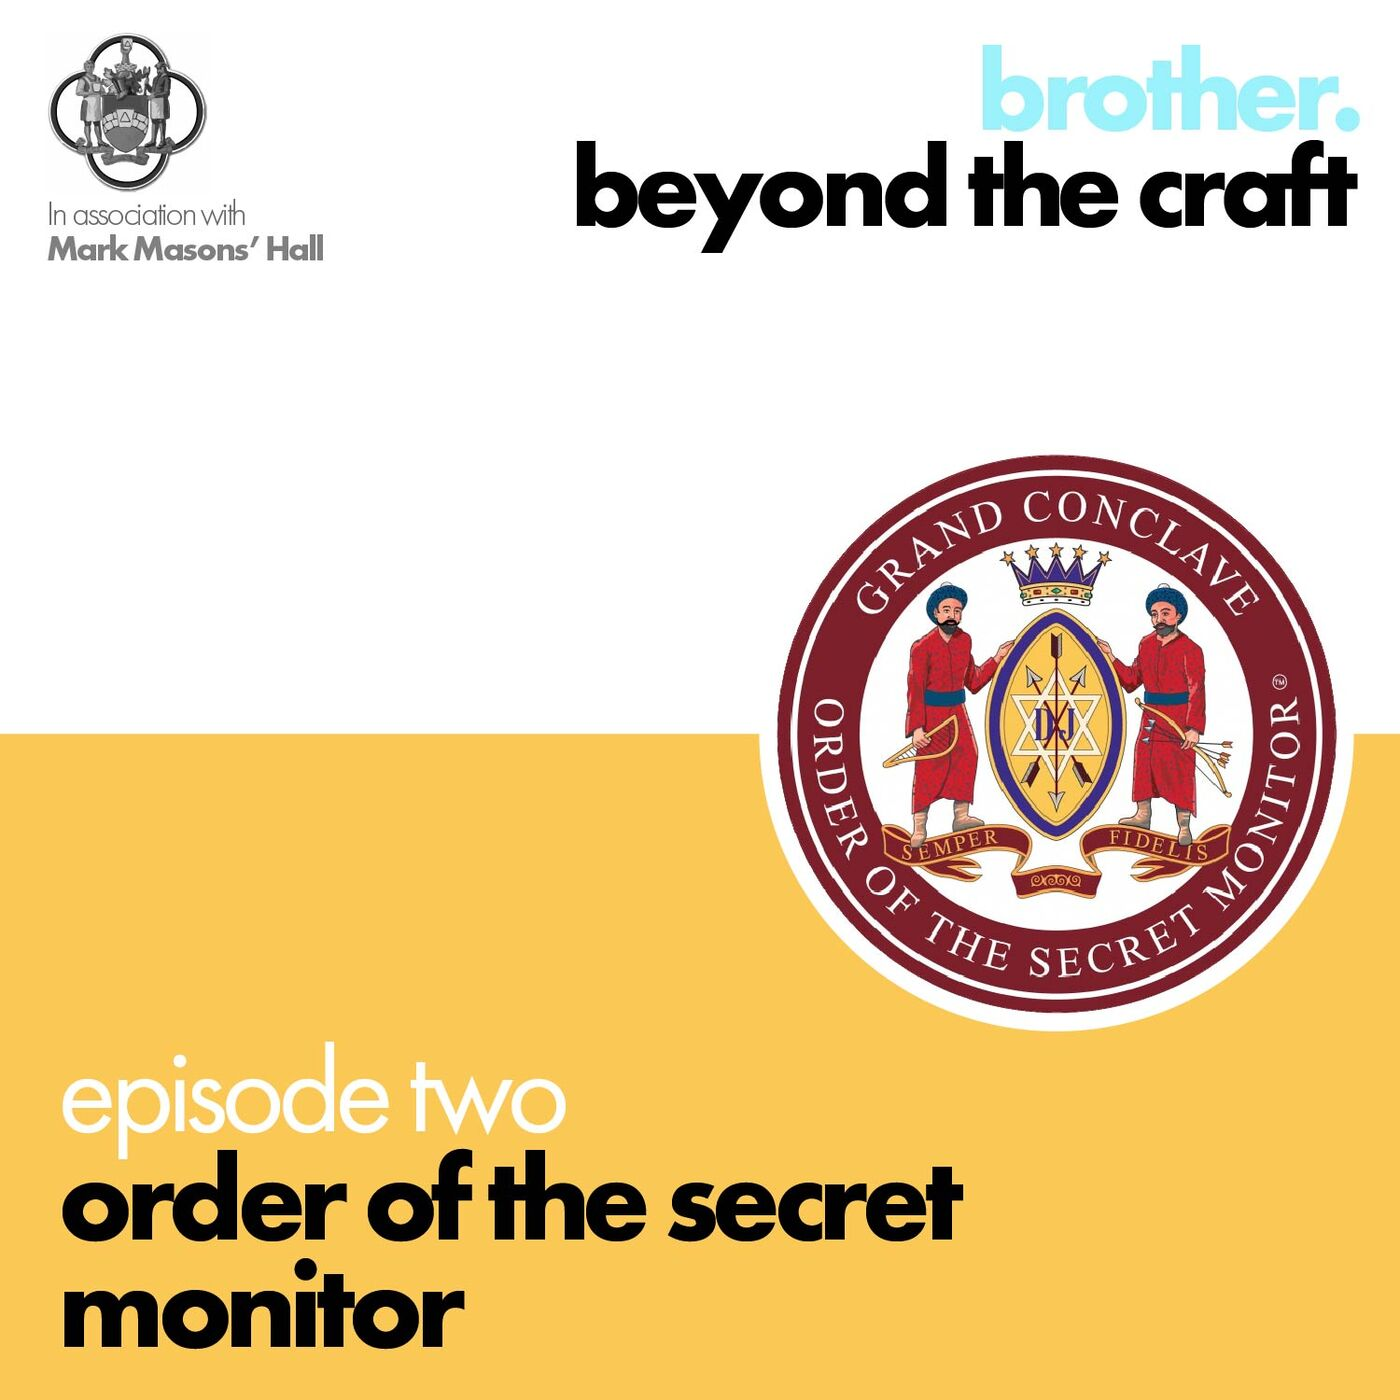 Brother: Beyond the Craft - Order of the Secret Monitor